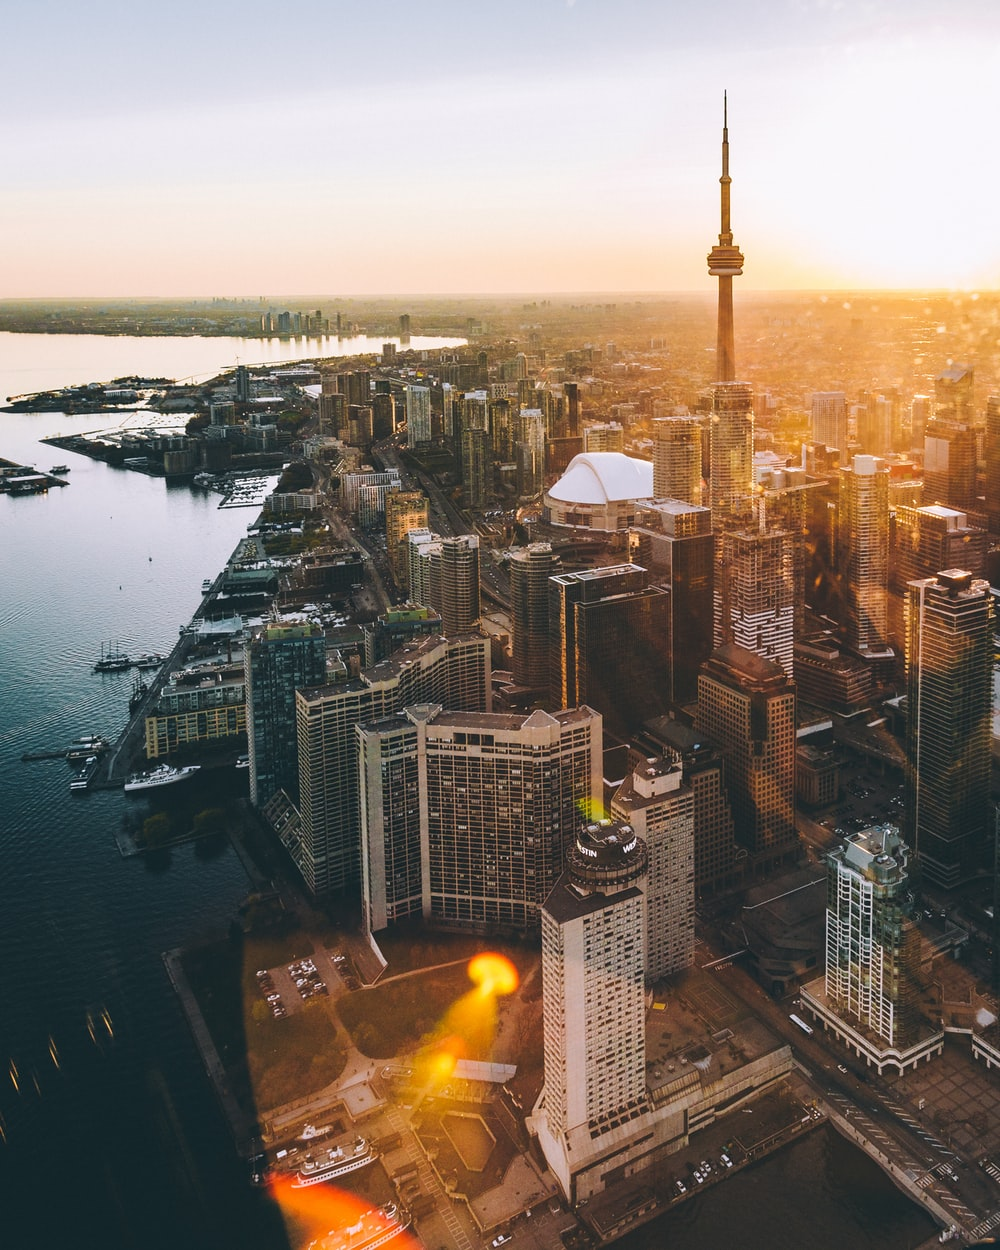 100 Toronto Pictures [Stunning] Download Images on Unsplash 1000x1250